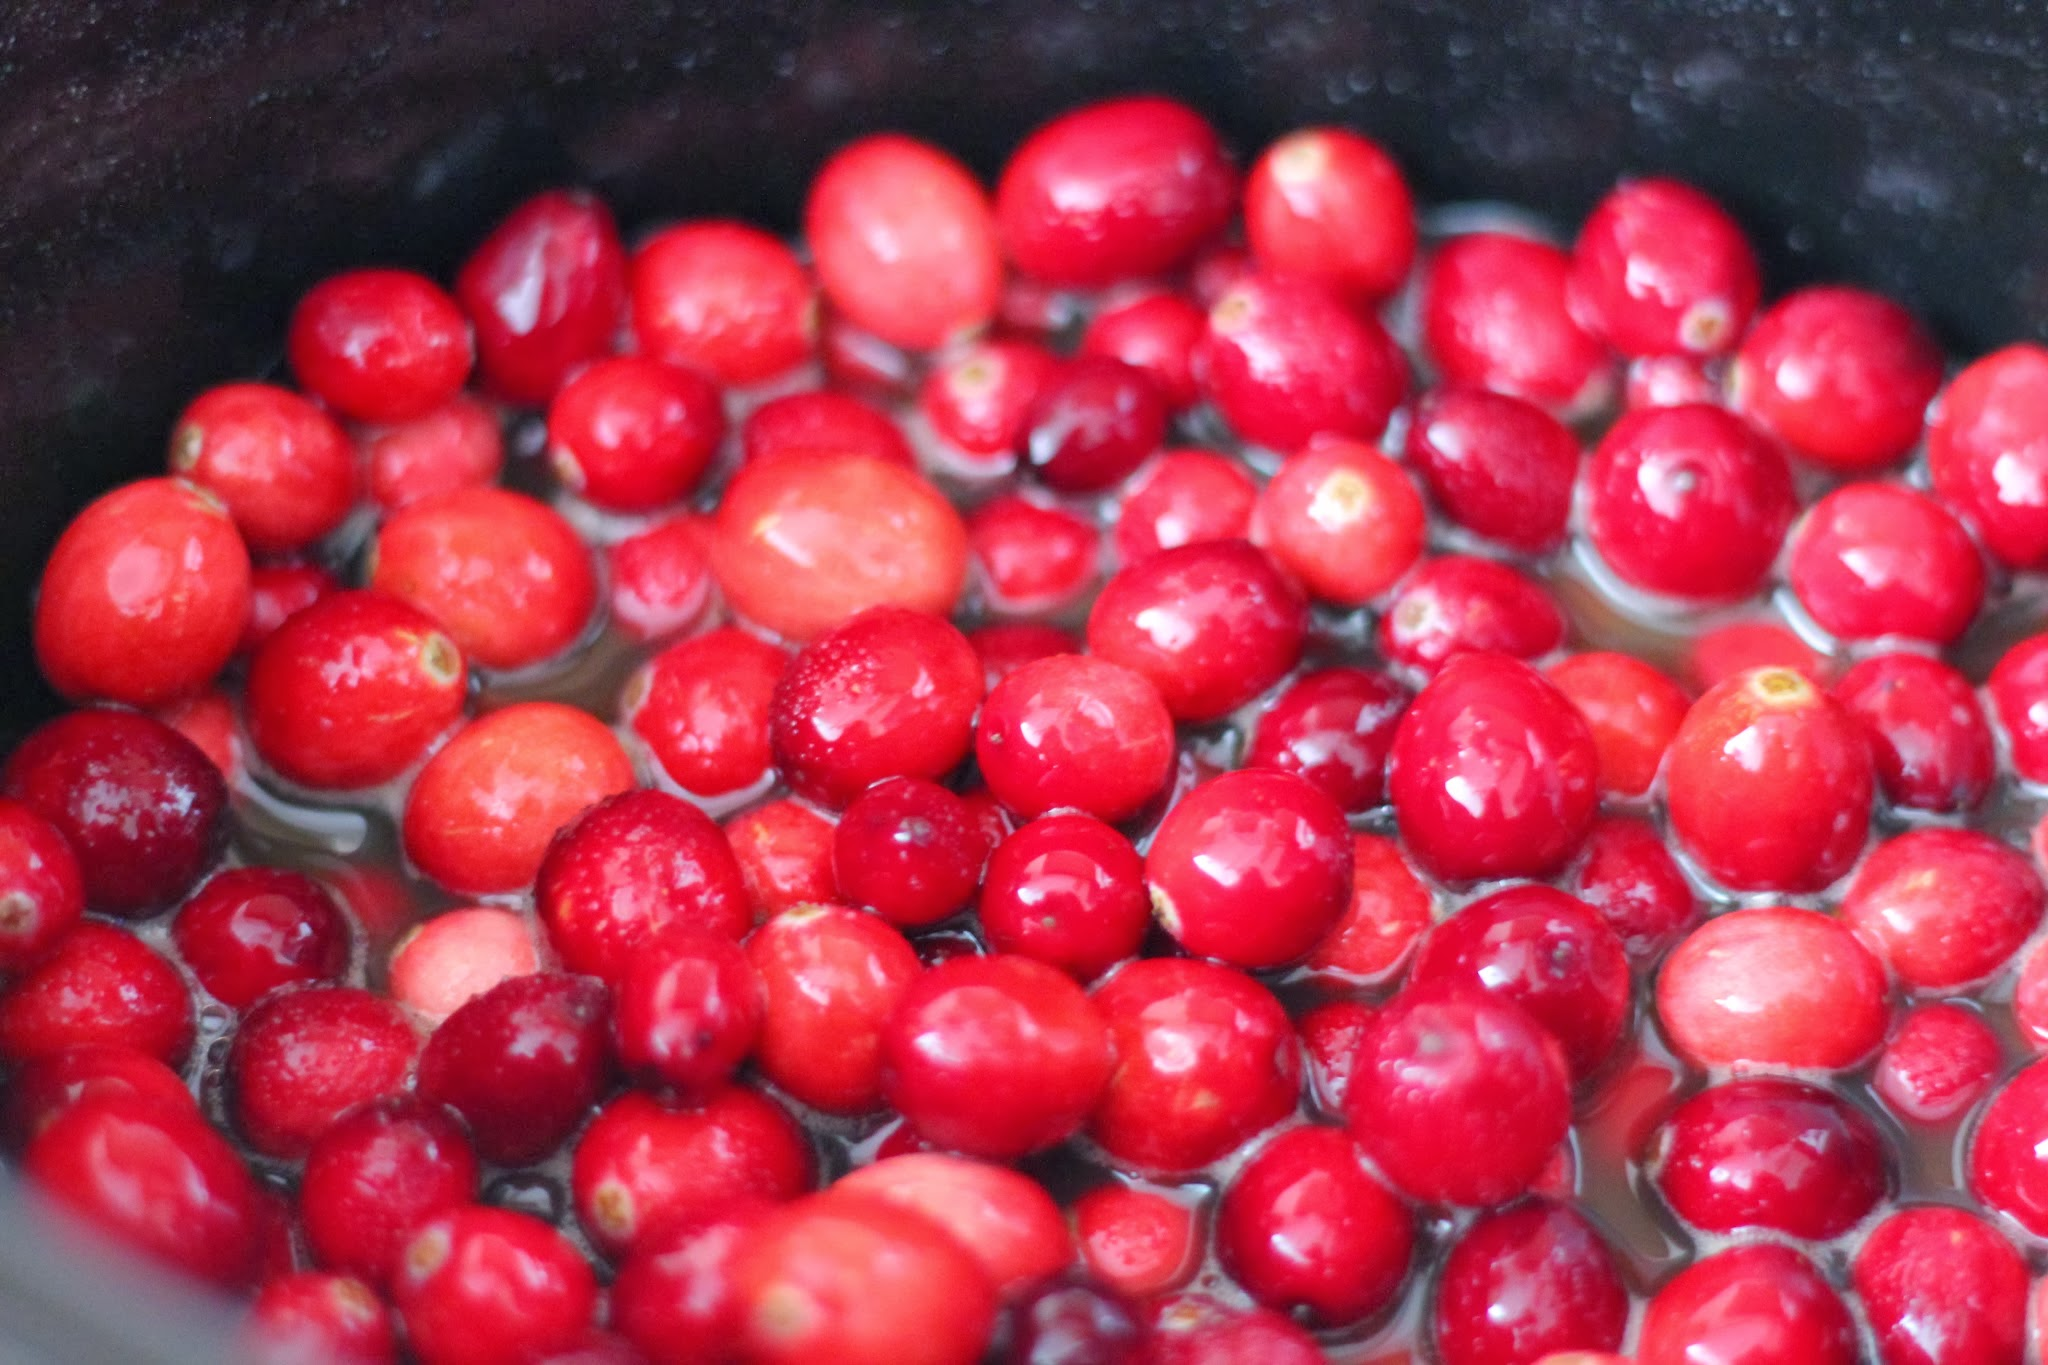 Gourmet cranberry sauce recipe. Ocean spray cranberry sauce recipe. Cranberry sauce recipes. Unique cranberry Sauce recipe. Cranberry sauce recipe with orange juice. Simple cranberry sauce recipe. Festive cranberry sauce recipe. Southern cranberry sauce recipe. Best cranberry compote recipe. #cranberry #sidedish #side #thanksgiving #fall #holiday